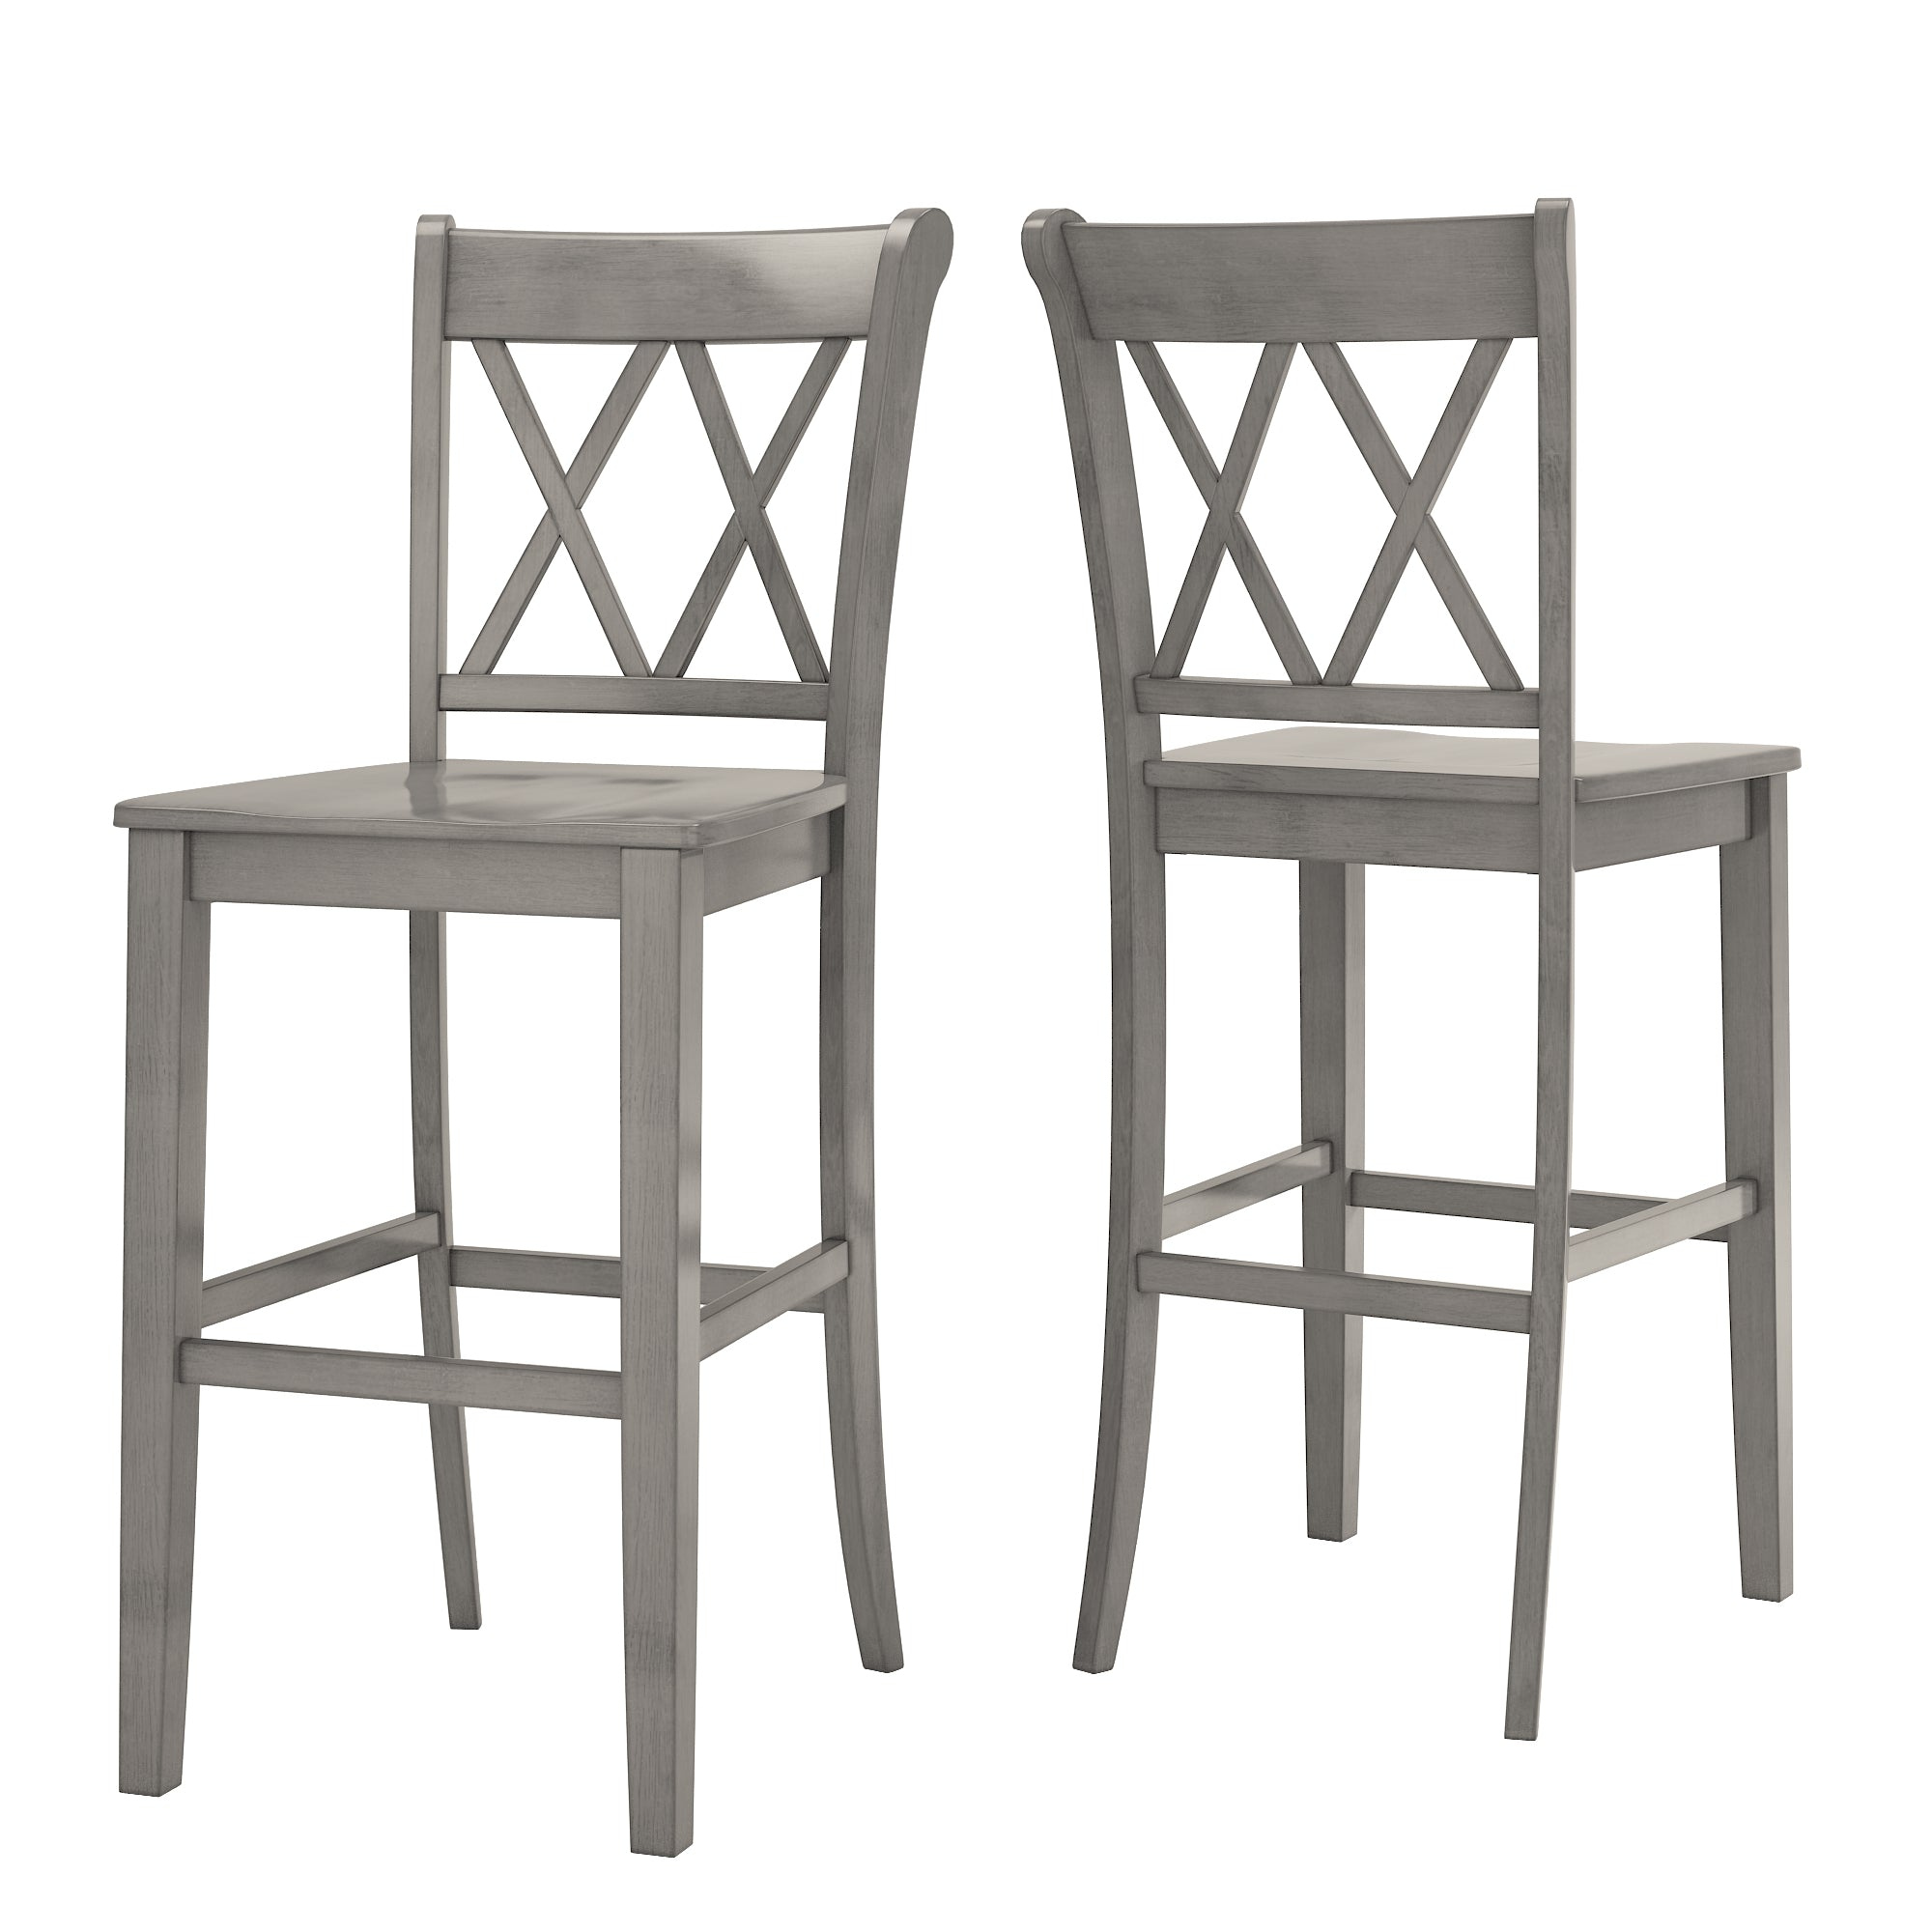 Antique Grey Finish With Double X Back Bar Height Chairs (Set of 2)